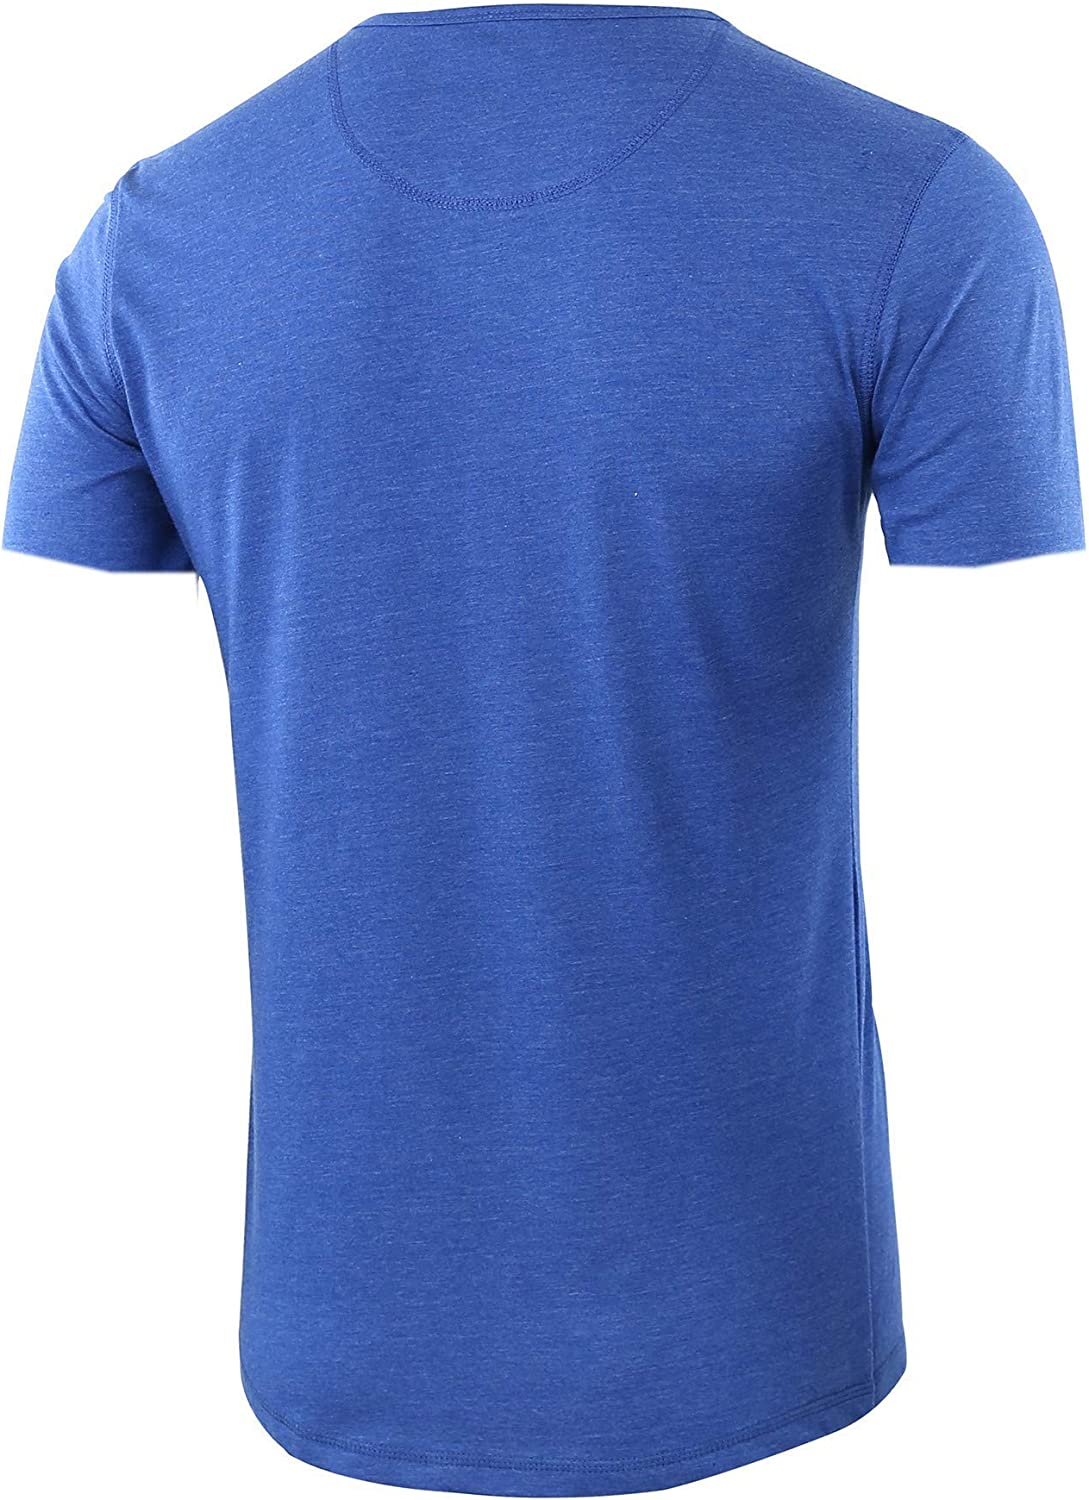 Oritina Mens Casual Soft Solid Retro Workout Gym Short Sleeve Henley Tee Shirt